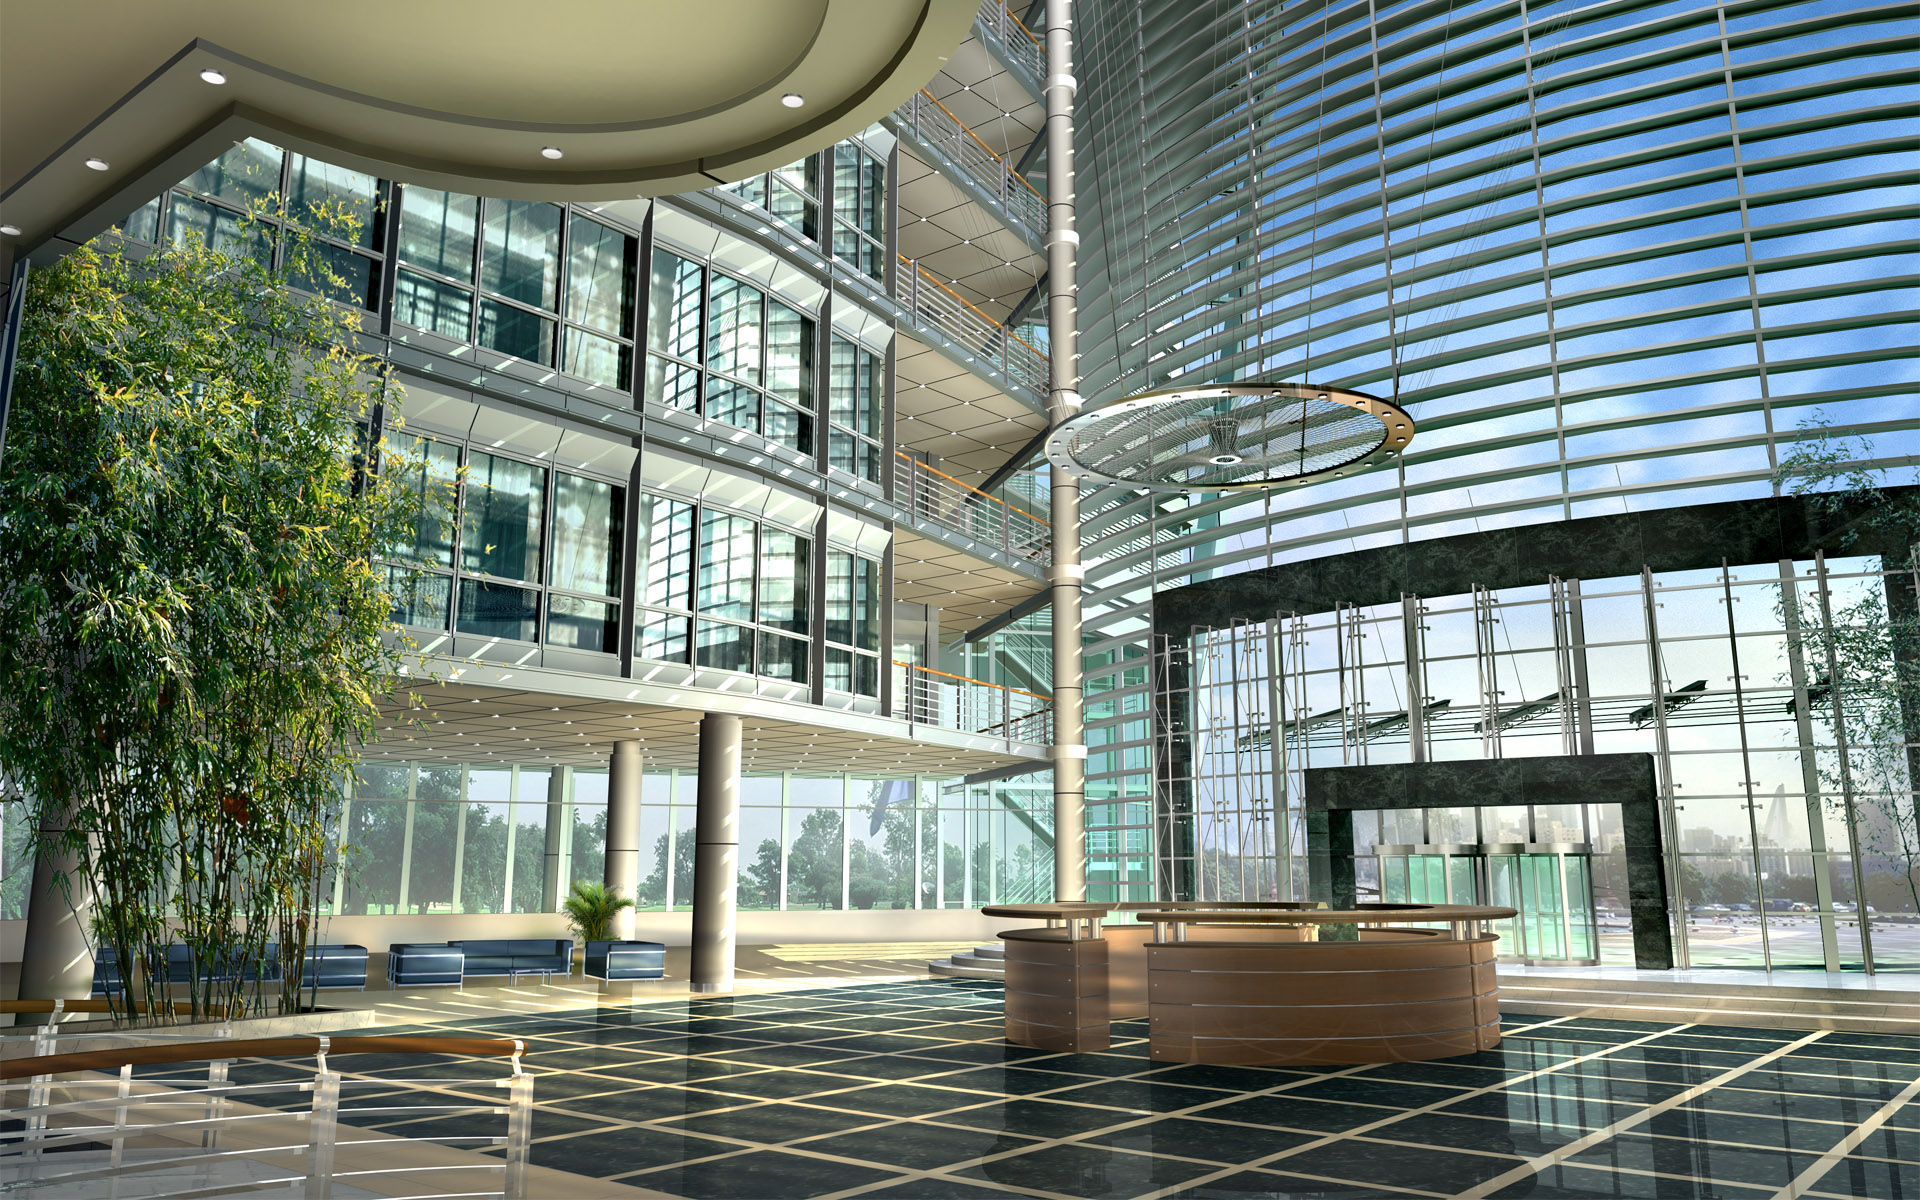 Glass Building Interior : Glass building interior free desktop wallpapers for